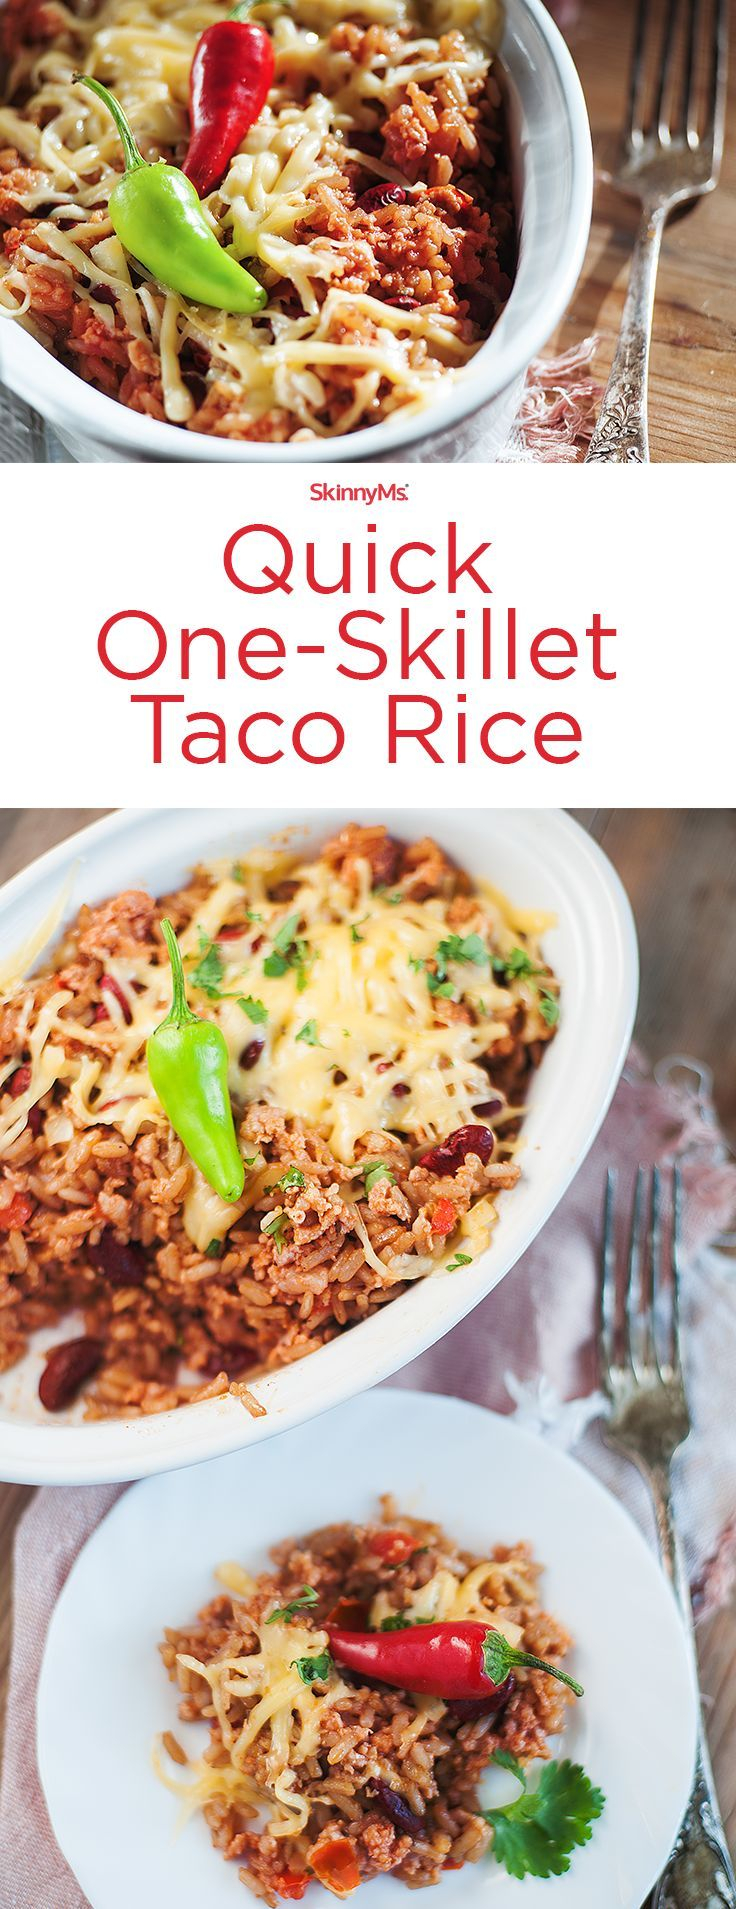 Quick One-Skillet Taco Rice!